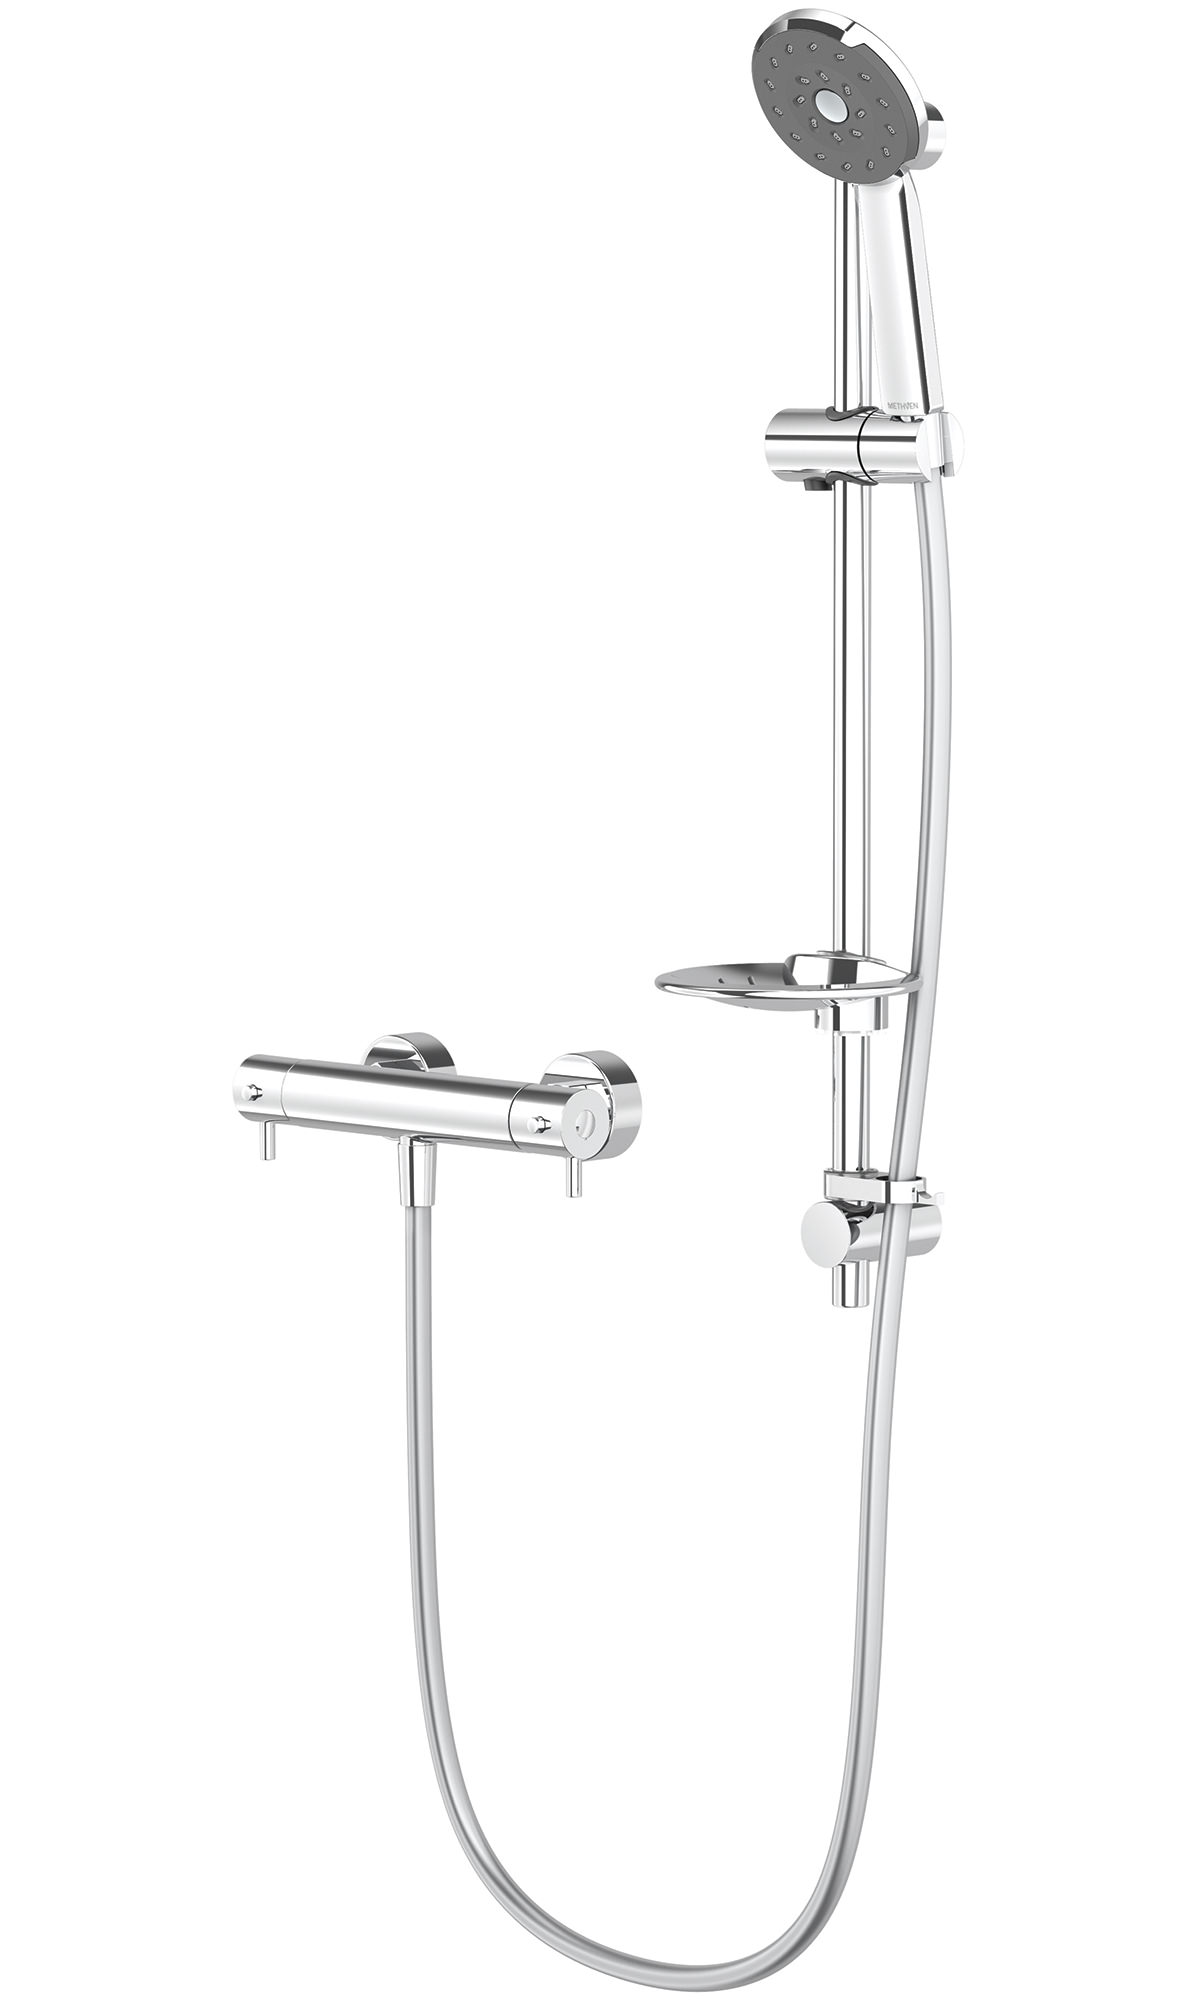 elbow excluding rail mixer diverter planet head arm two handset trent bathroom valve bar outlet fixed arcade with thermostatic packs shower nickel concealed showers and hose